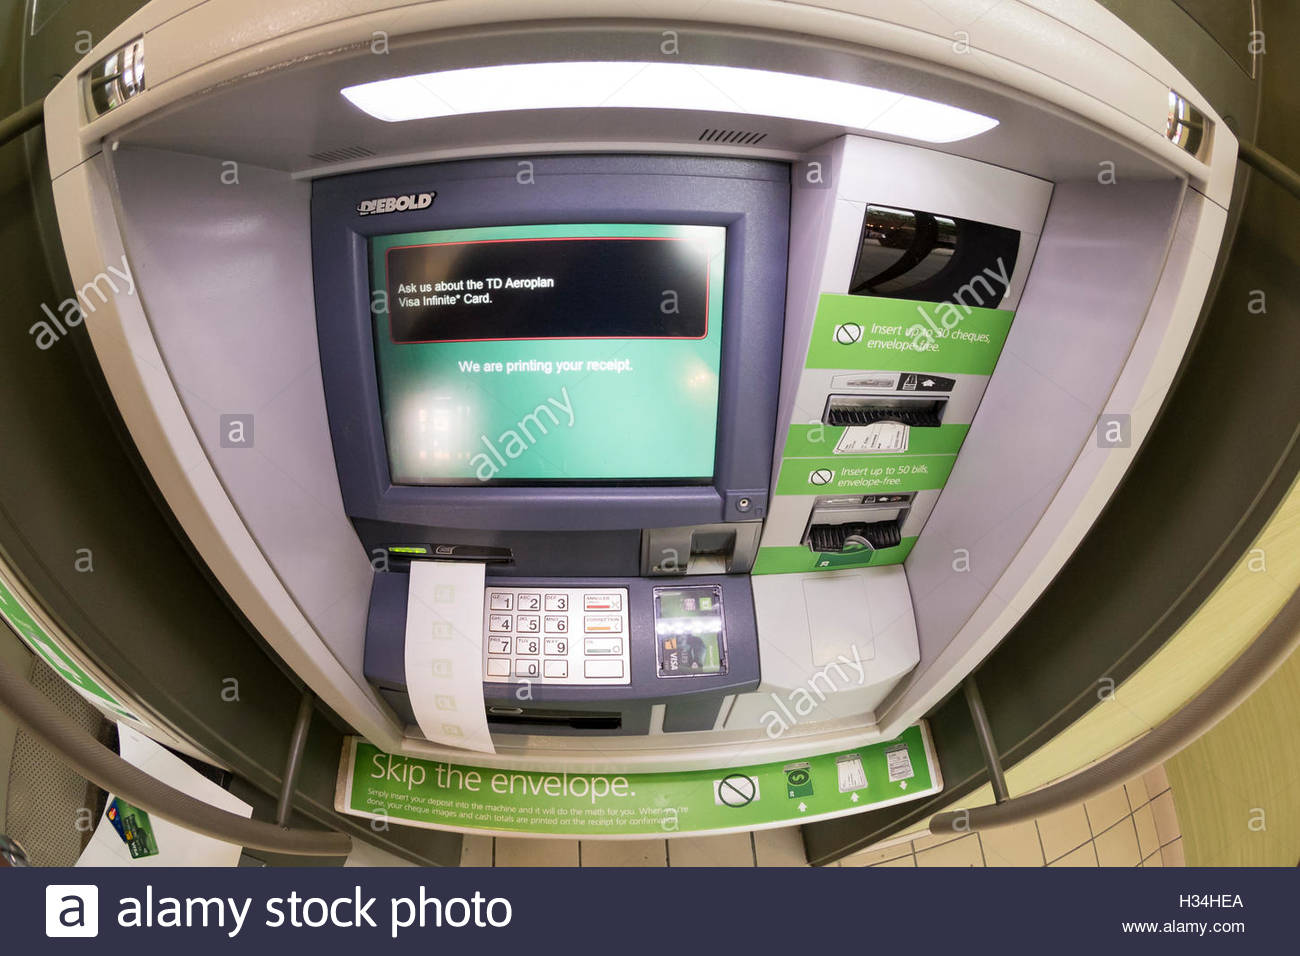 TD bank: Automated Teller Machine (ATM) printing out a slip